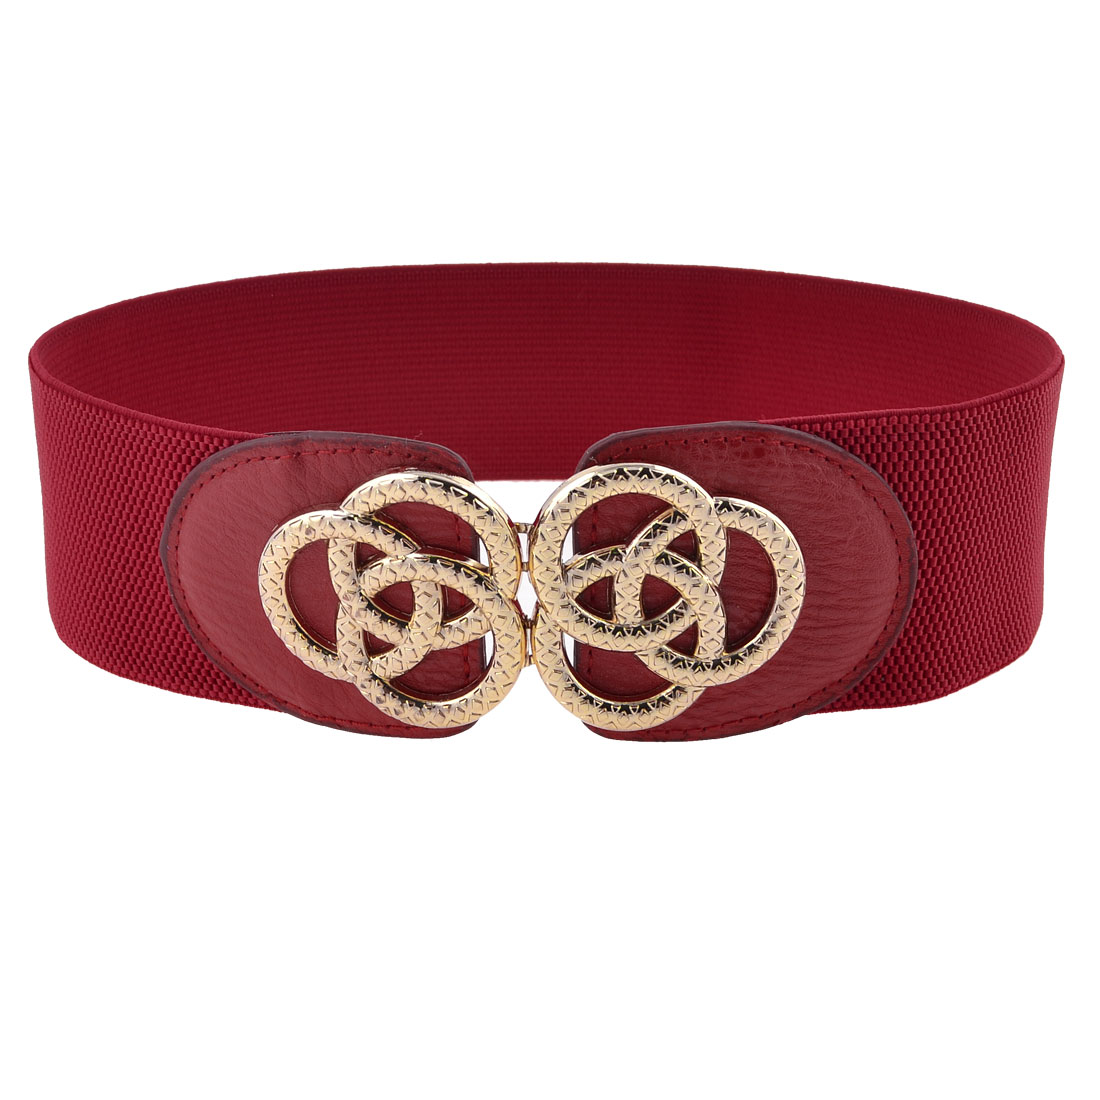 Dark Red Faux Leather Front Ring Interlock Buckle 6cm Wide Waist Belt for Ladies